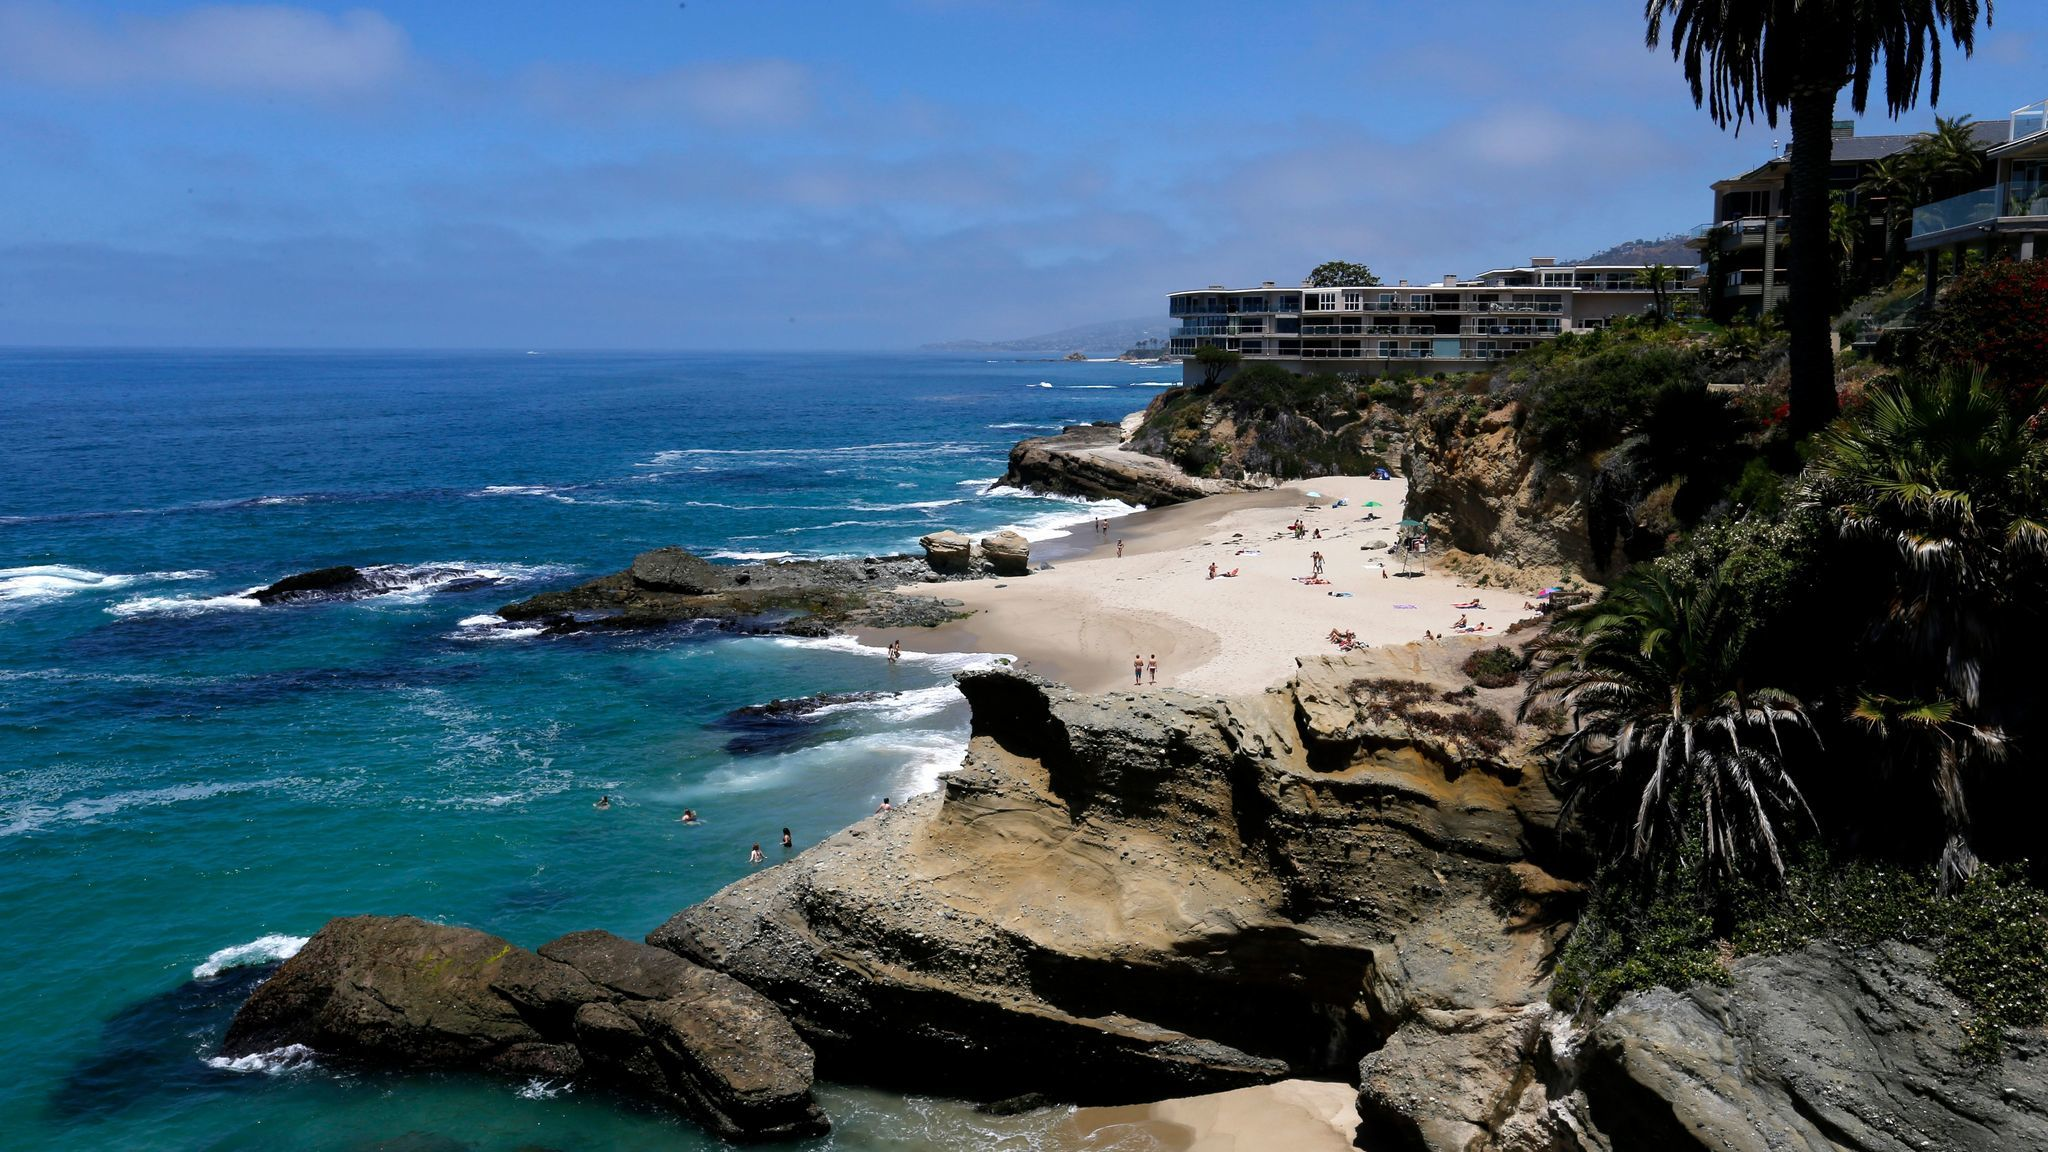 Table Rock in Laguna Beach made the 2017-2017 Heal the Bay Honor Roll earning an A+ grade during all seasons.